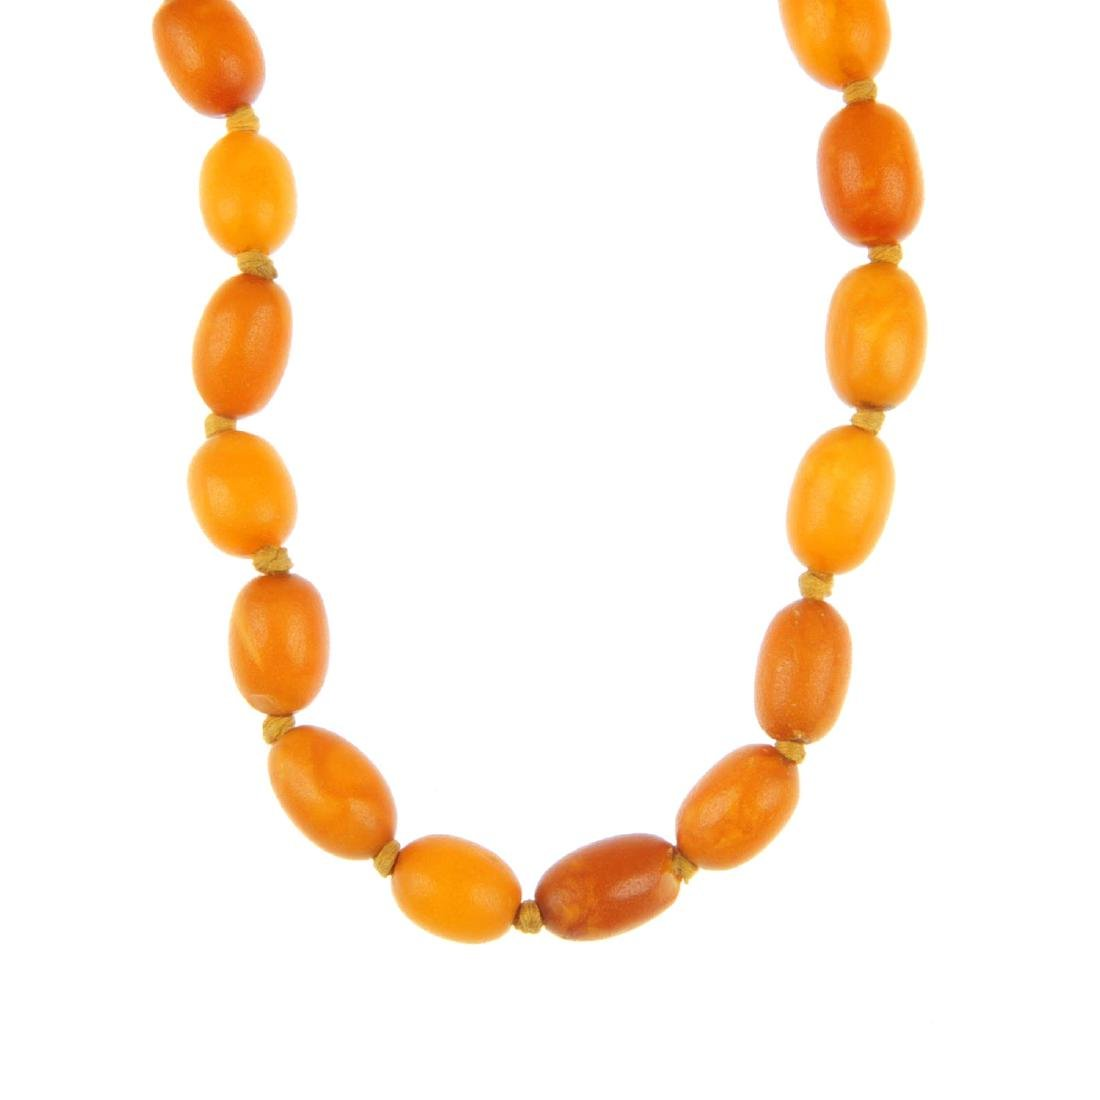 A natural amber bead necklace. The long-length necklace